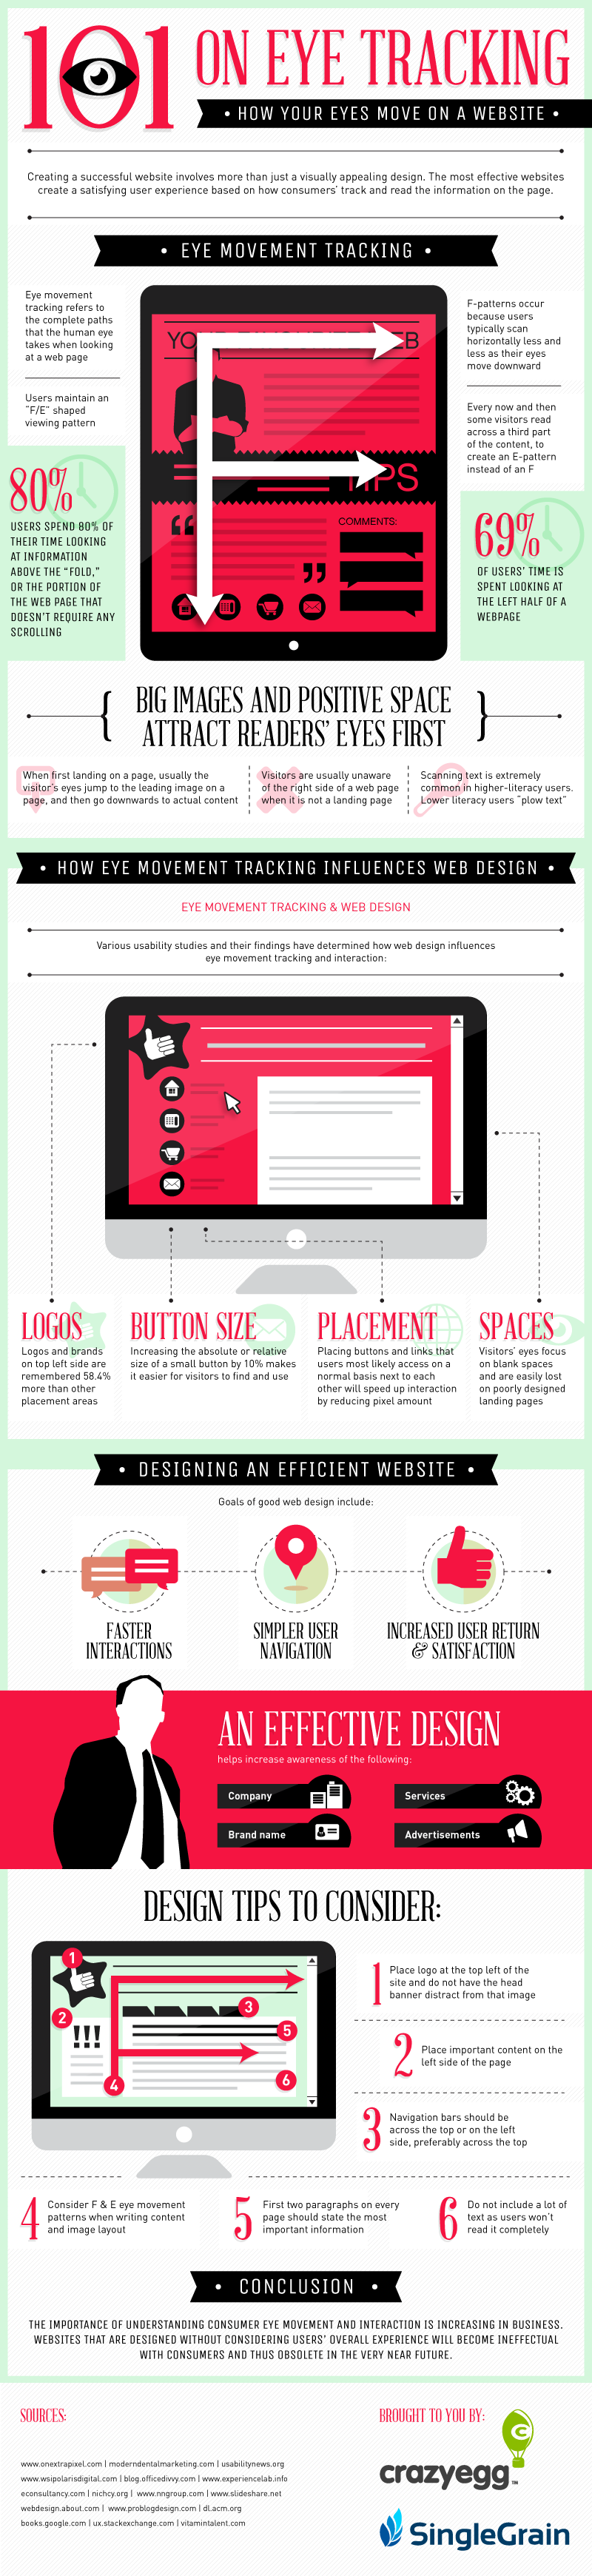 101 on Eye Tracking: How Your Eyes Move on a Website Infographic